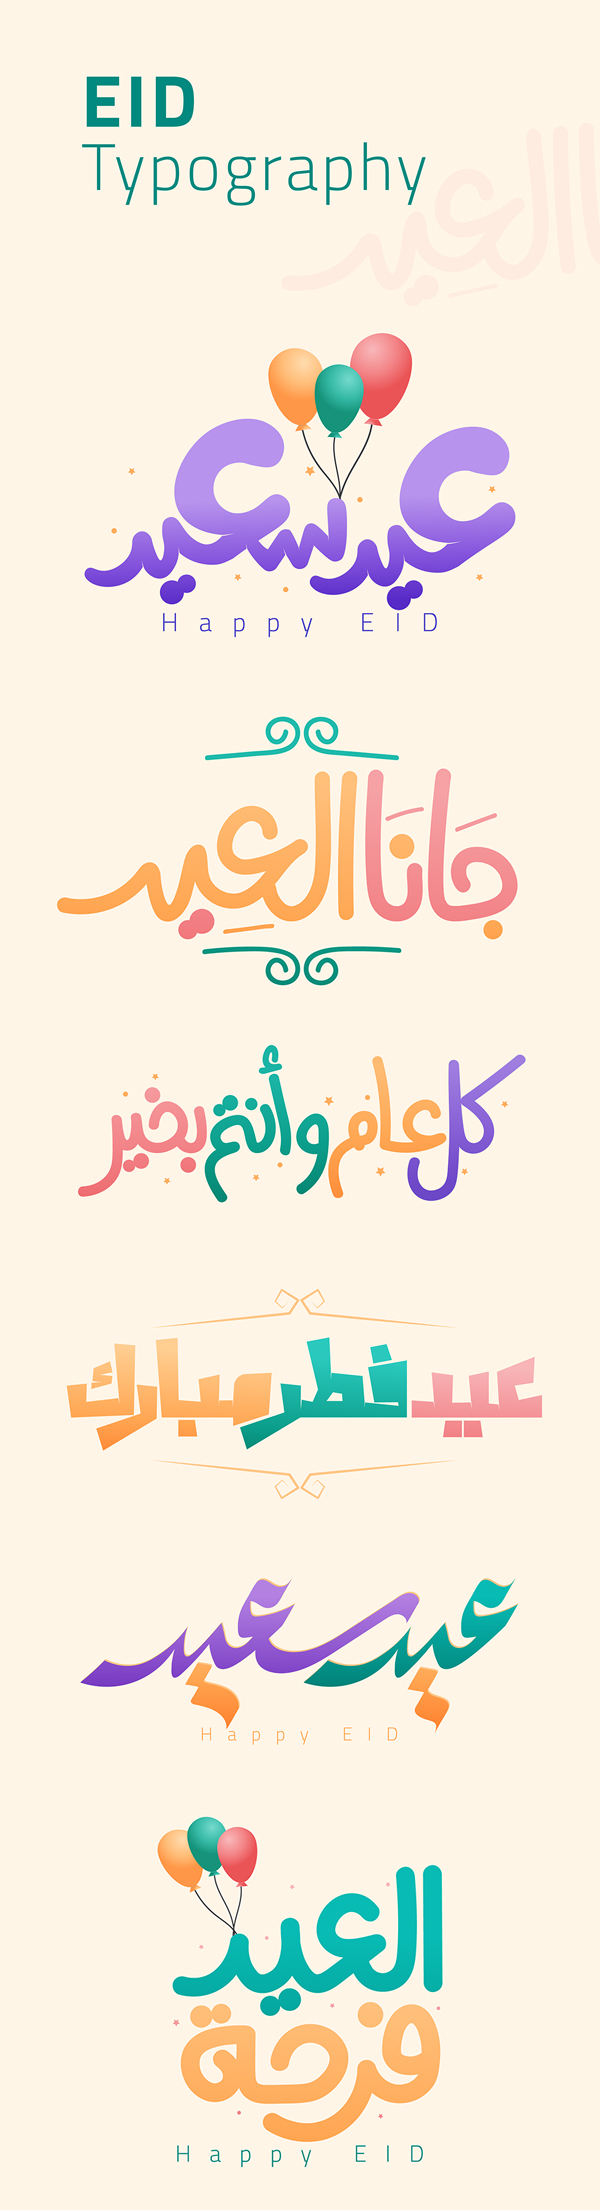 EID Typography Free Download Free Font